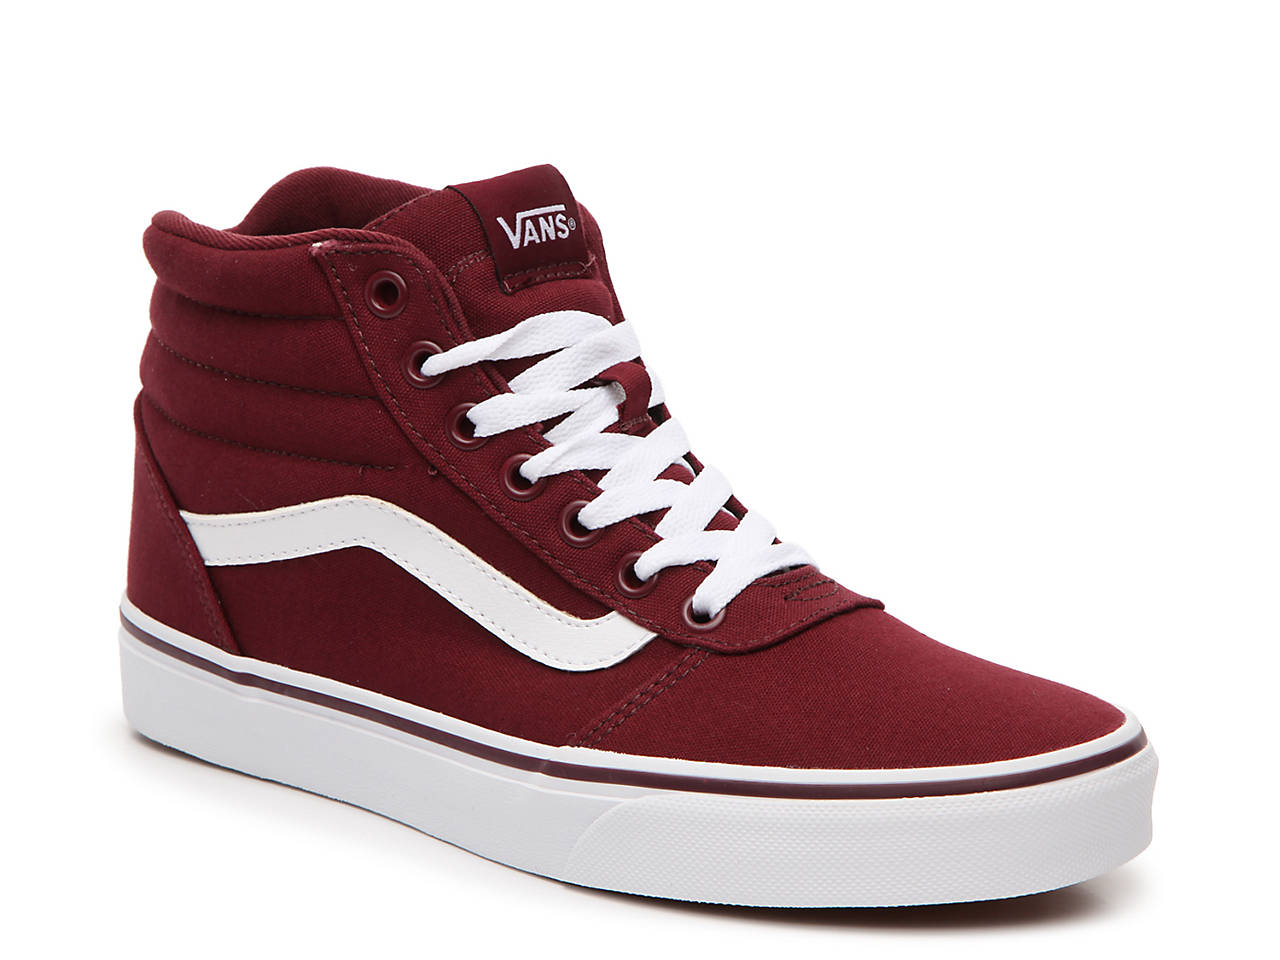 Women's Vans Ward Hi High Top Sneakers sale recommend under 50 dollars discount 2014 unisex latest collections cheap online 2014 cheap price vRHPm5Iec6